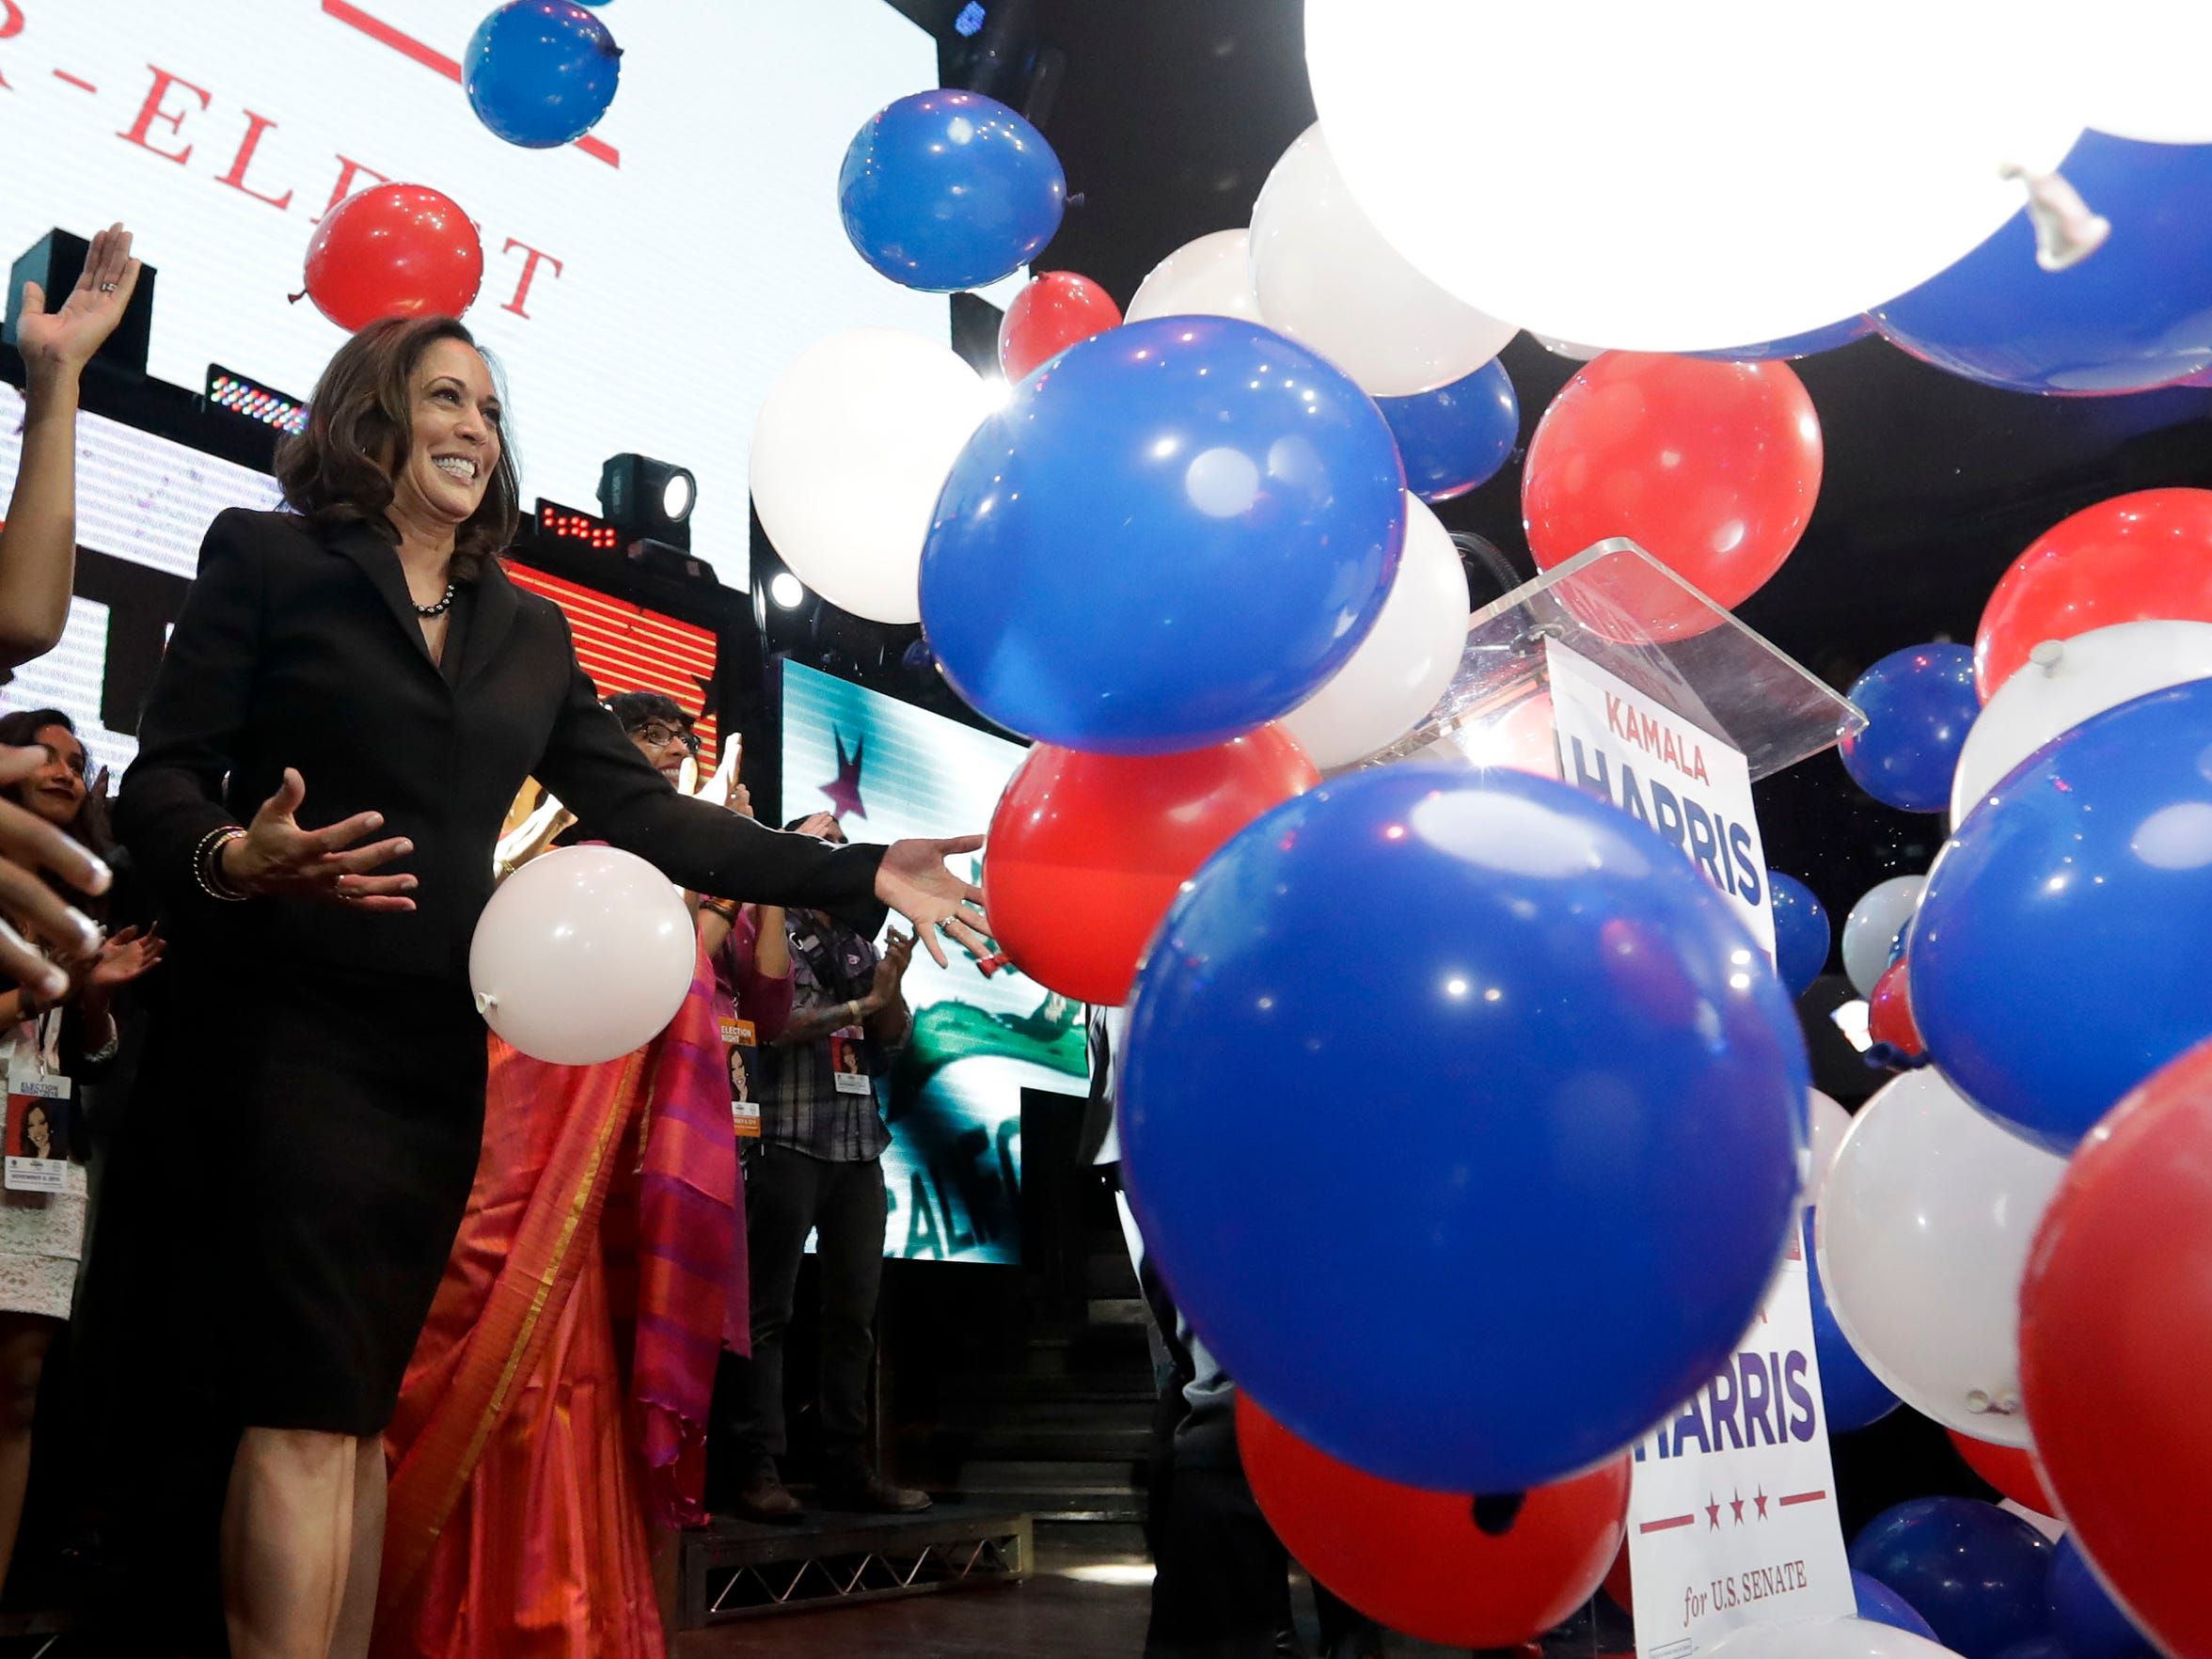 Kamala Harris greets supporters at a election night rally on Nov. 8, 2016 in Los Angeles.